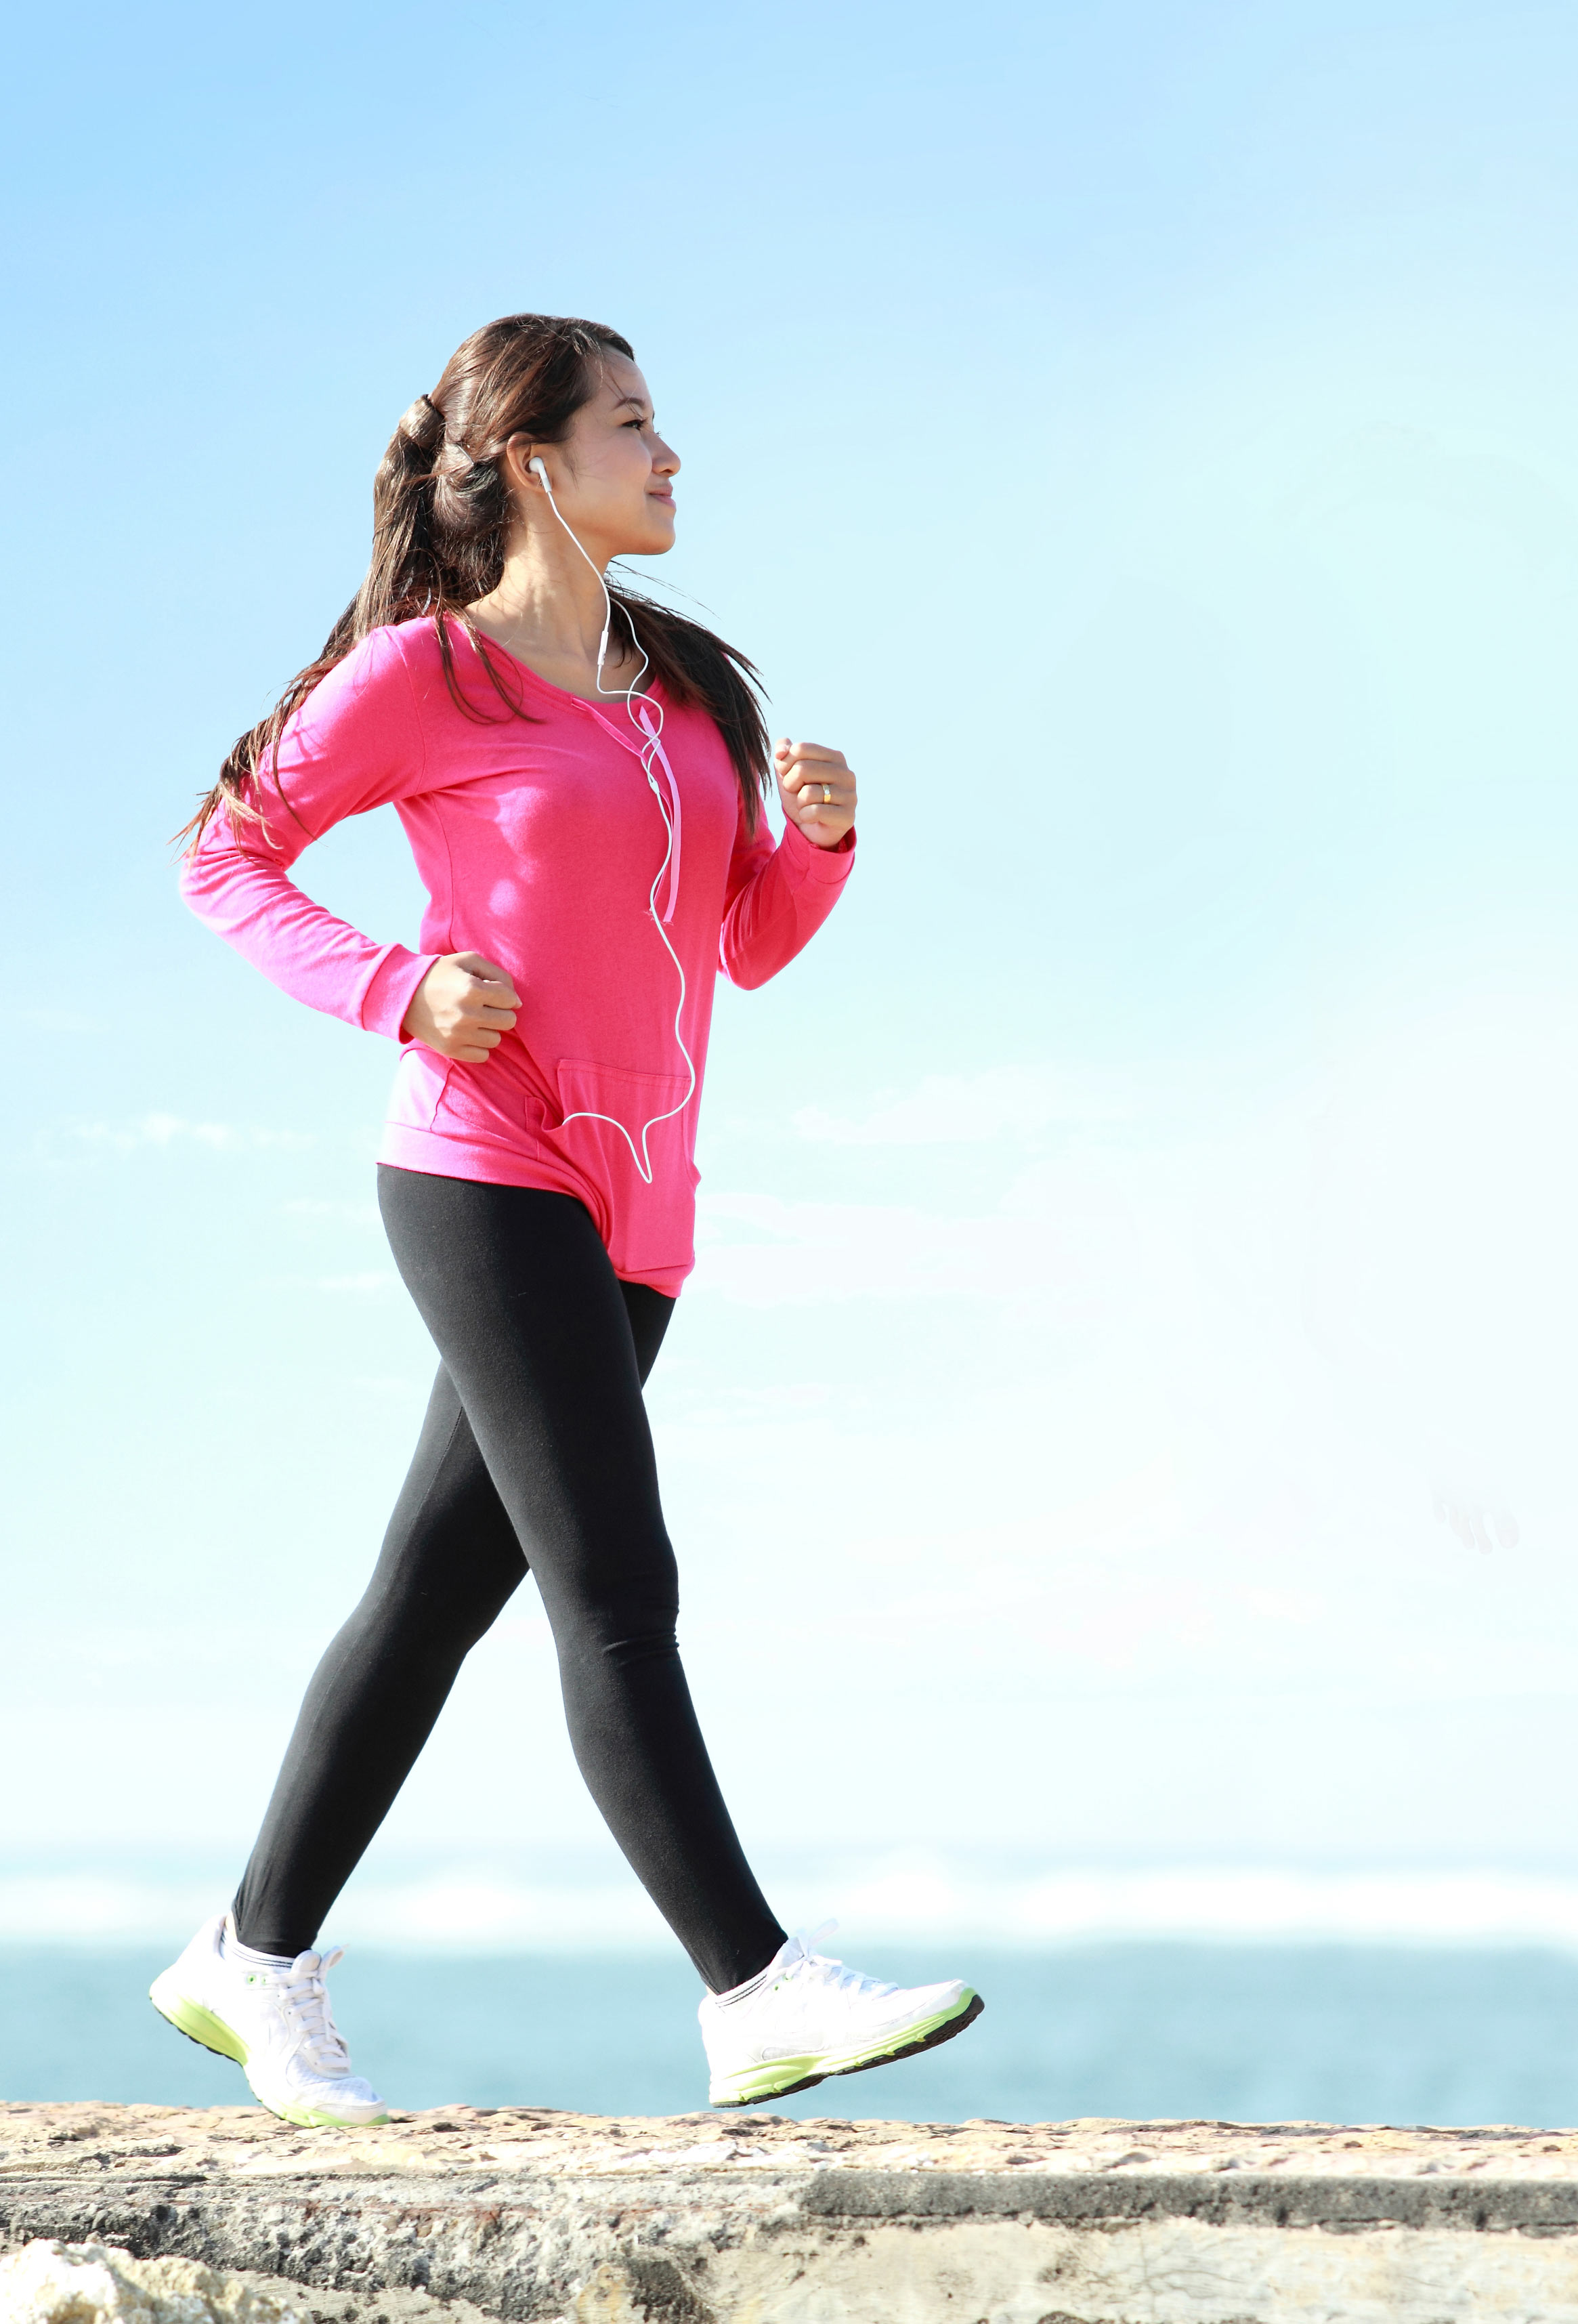 Small Steps That Lead To A Healthier You